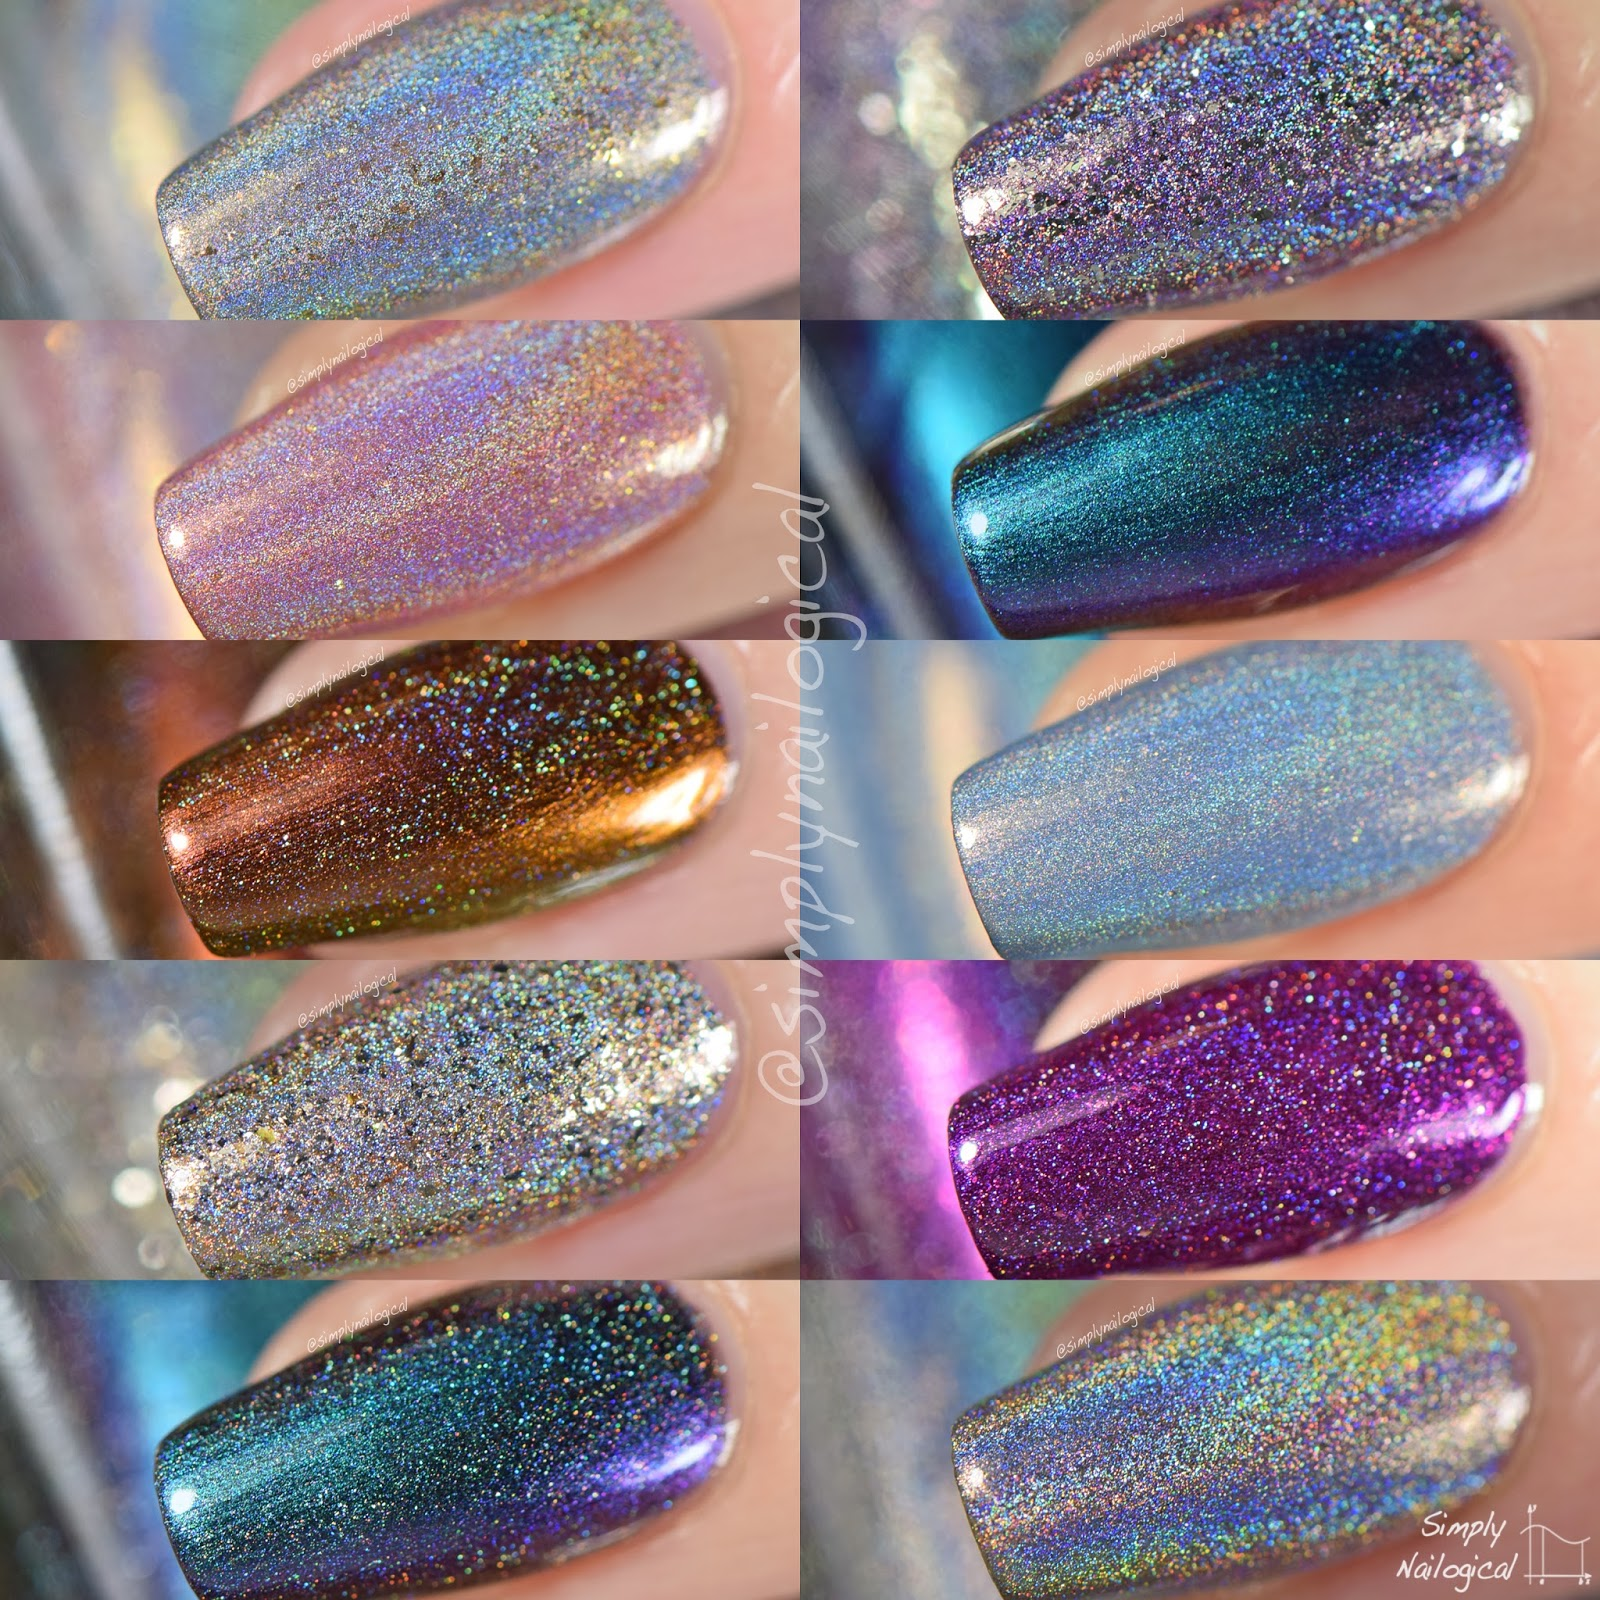 Simply Nailogical: I Love Nail Polish 2015 Spring Collection